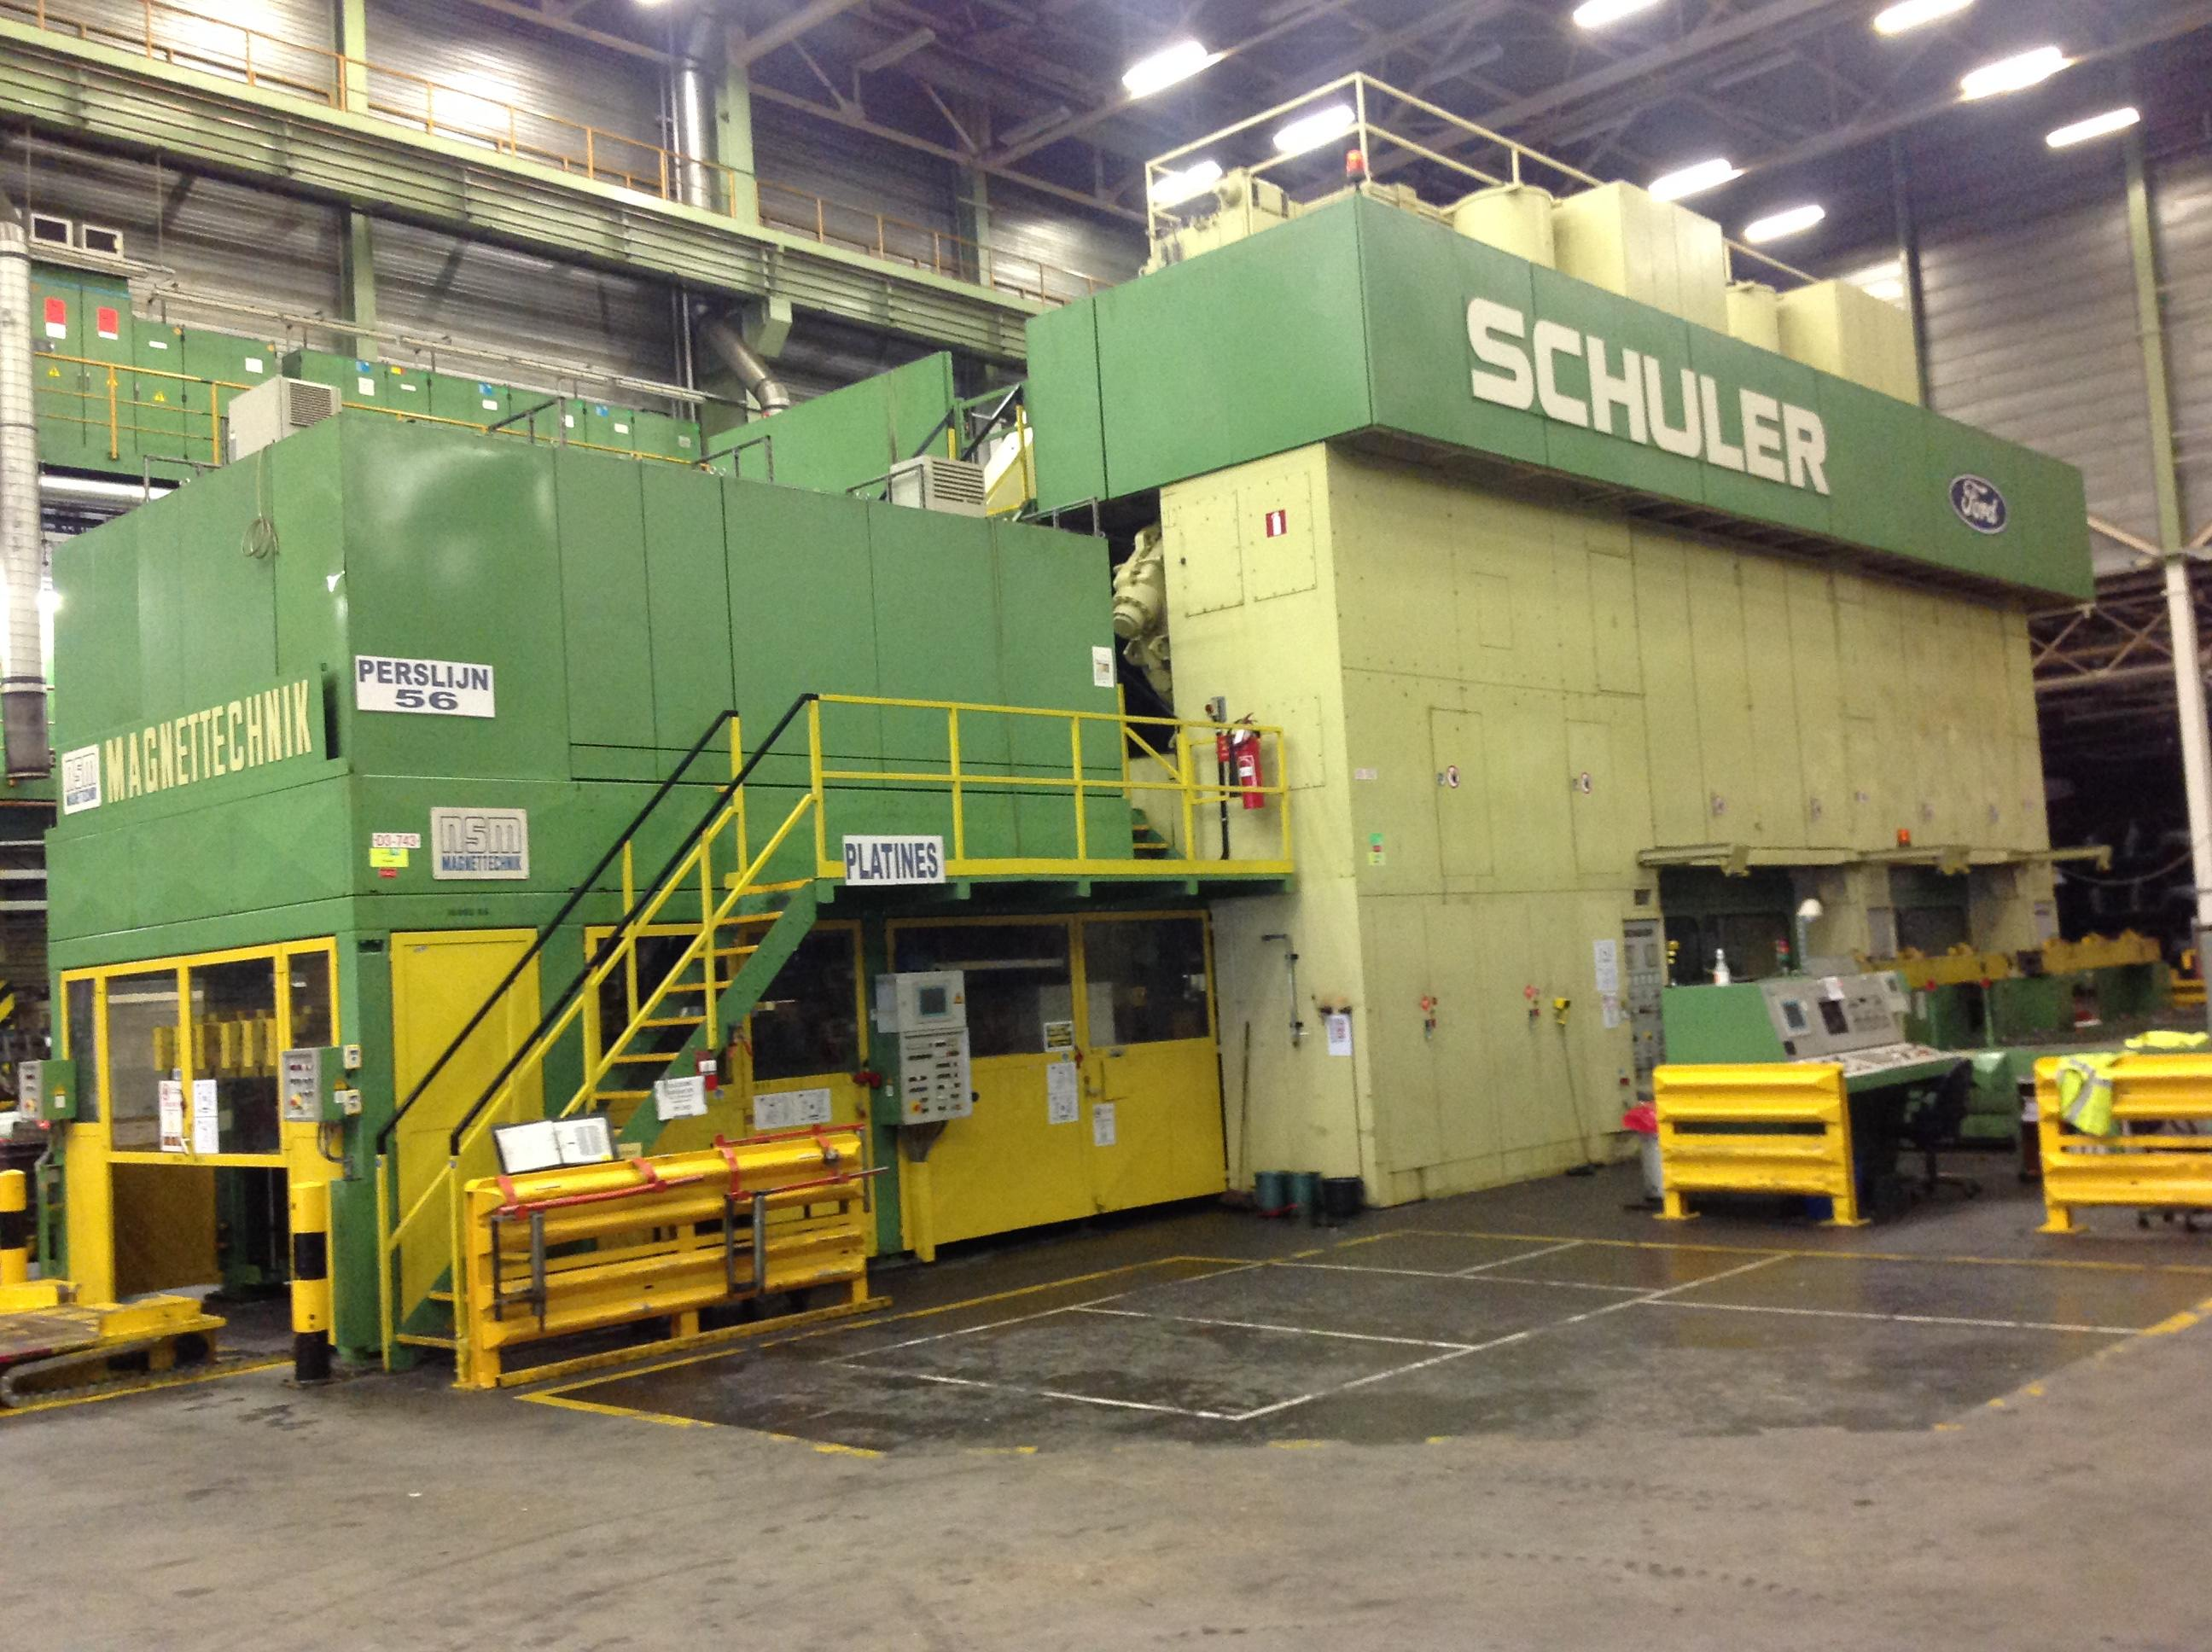 2200 TON SCHULER TRI -AXIS TRANSFER PRESS LINE, modernized in 2000, PLC Siemens S 5, (Line 56)